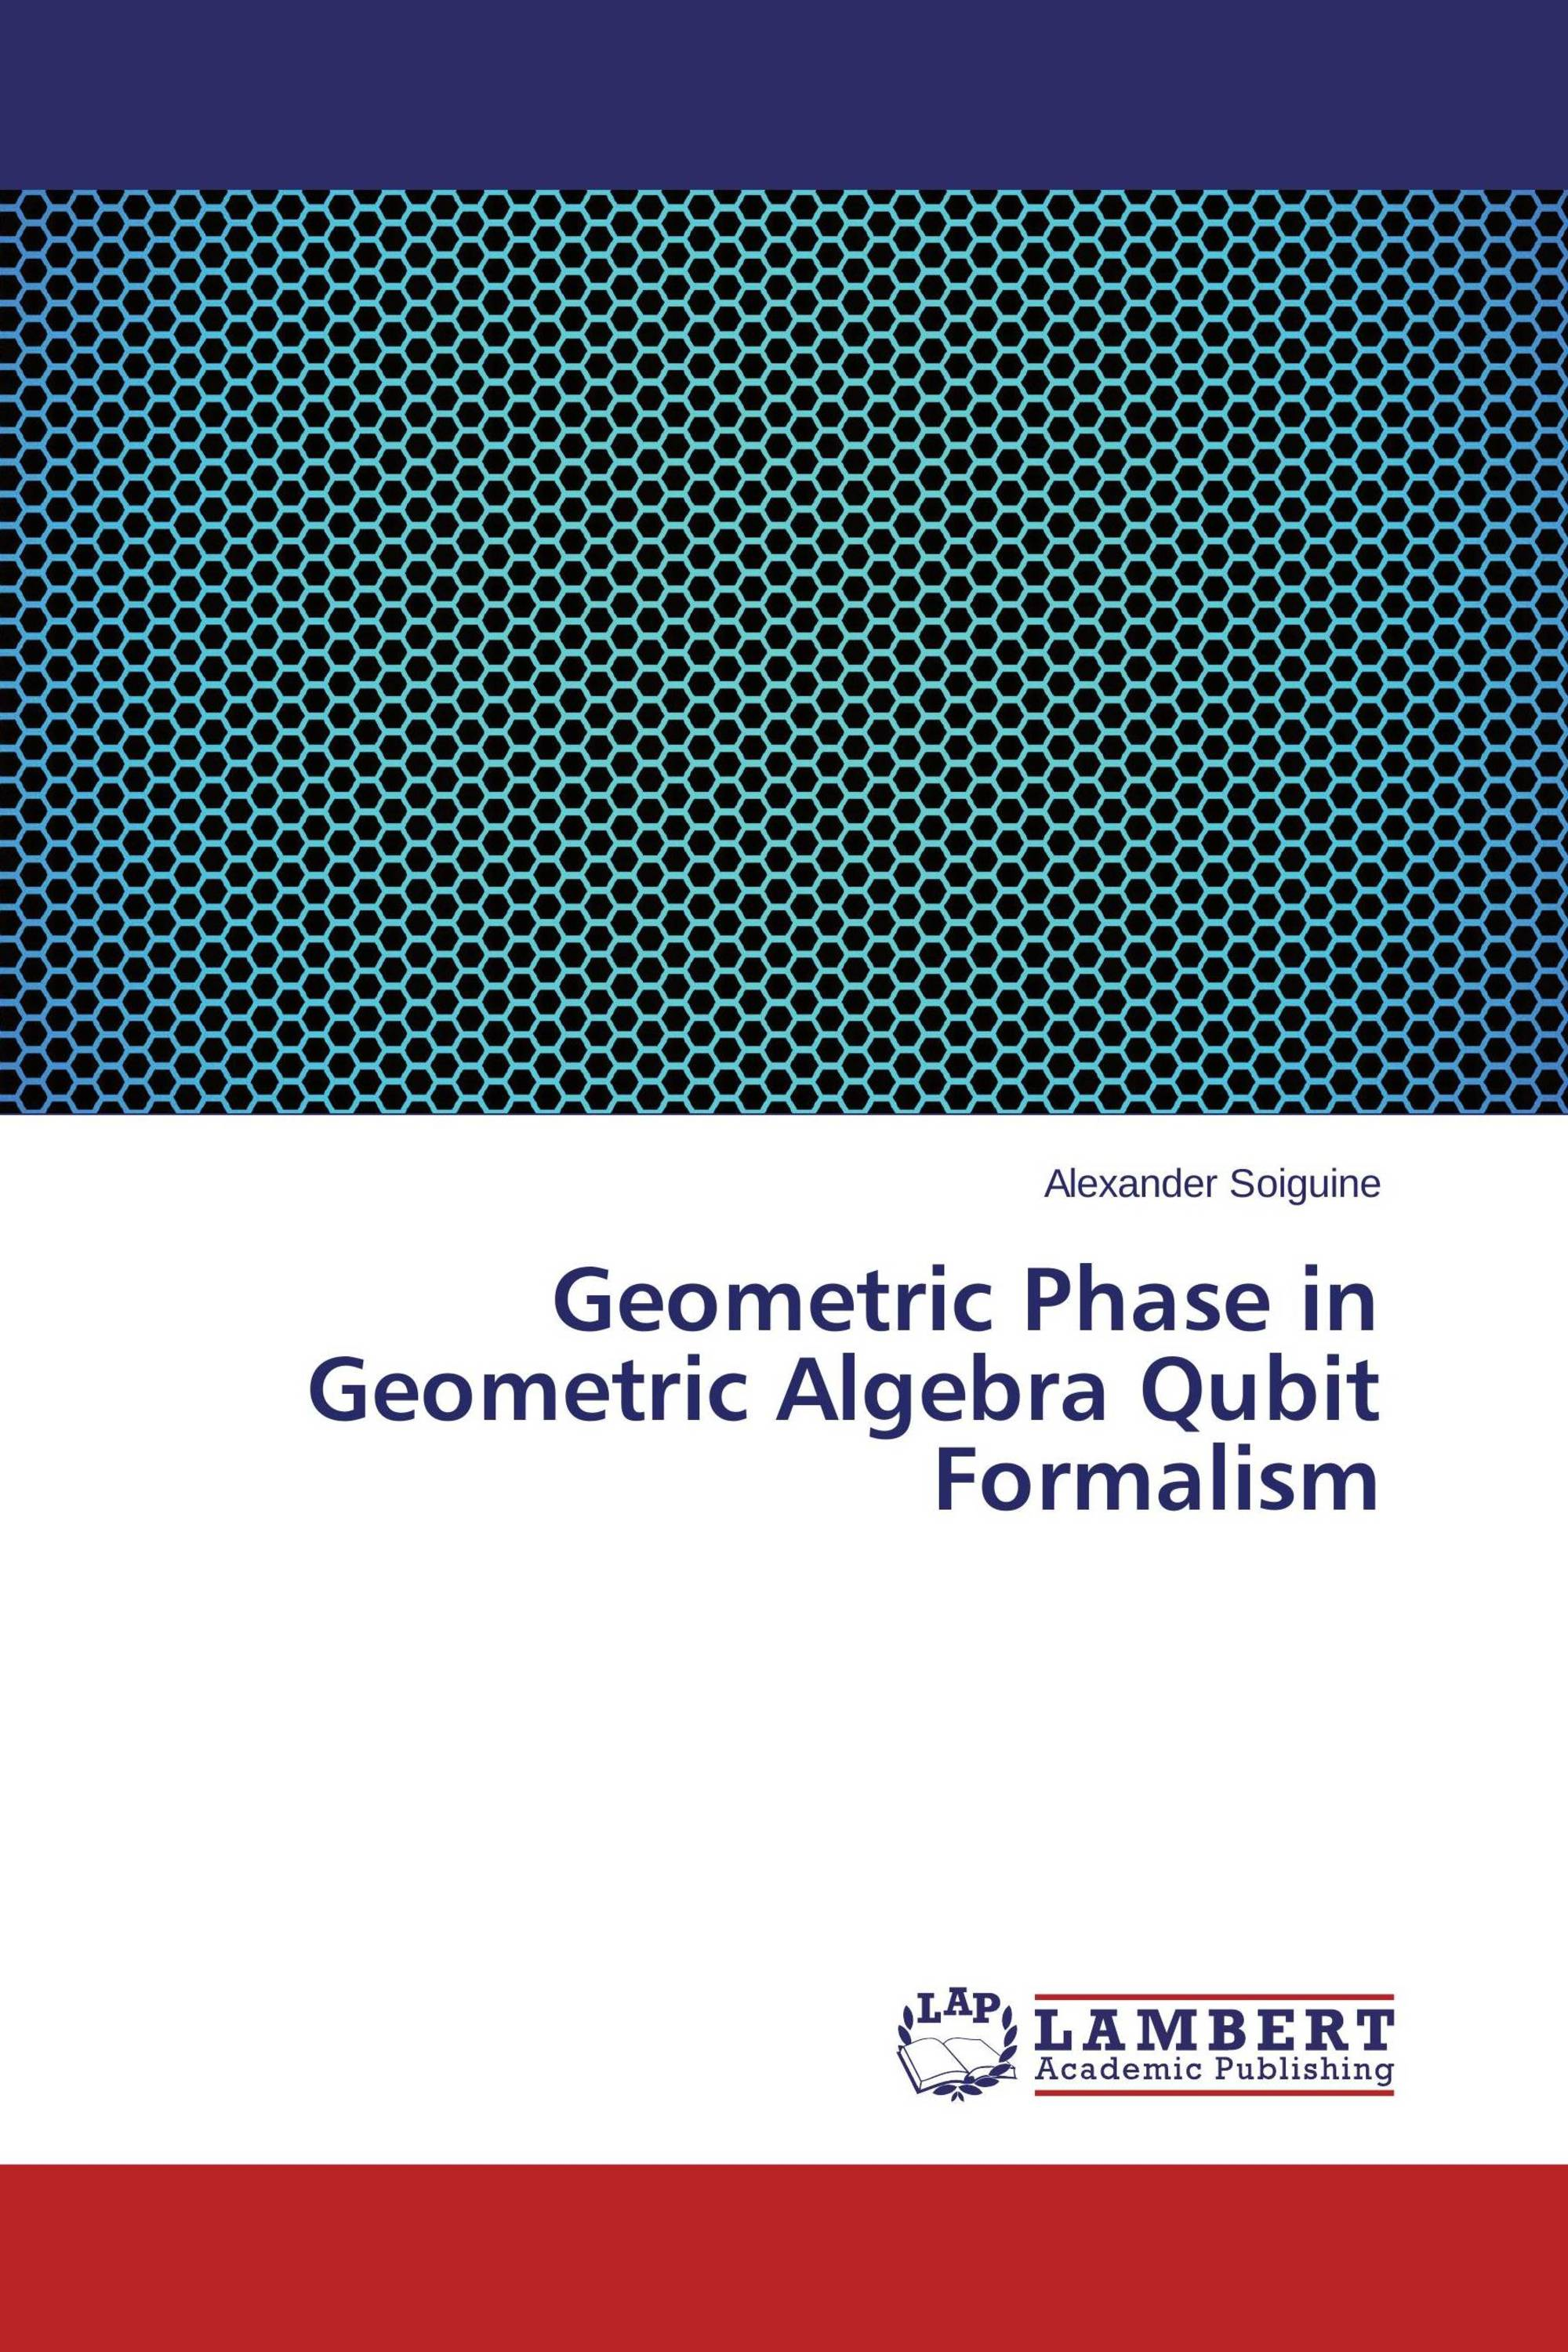 Geometric Phase in Geometric Algebra Qubit Formalism